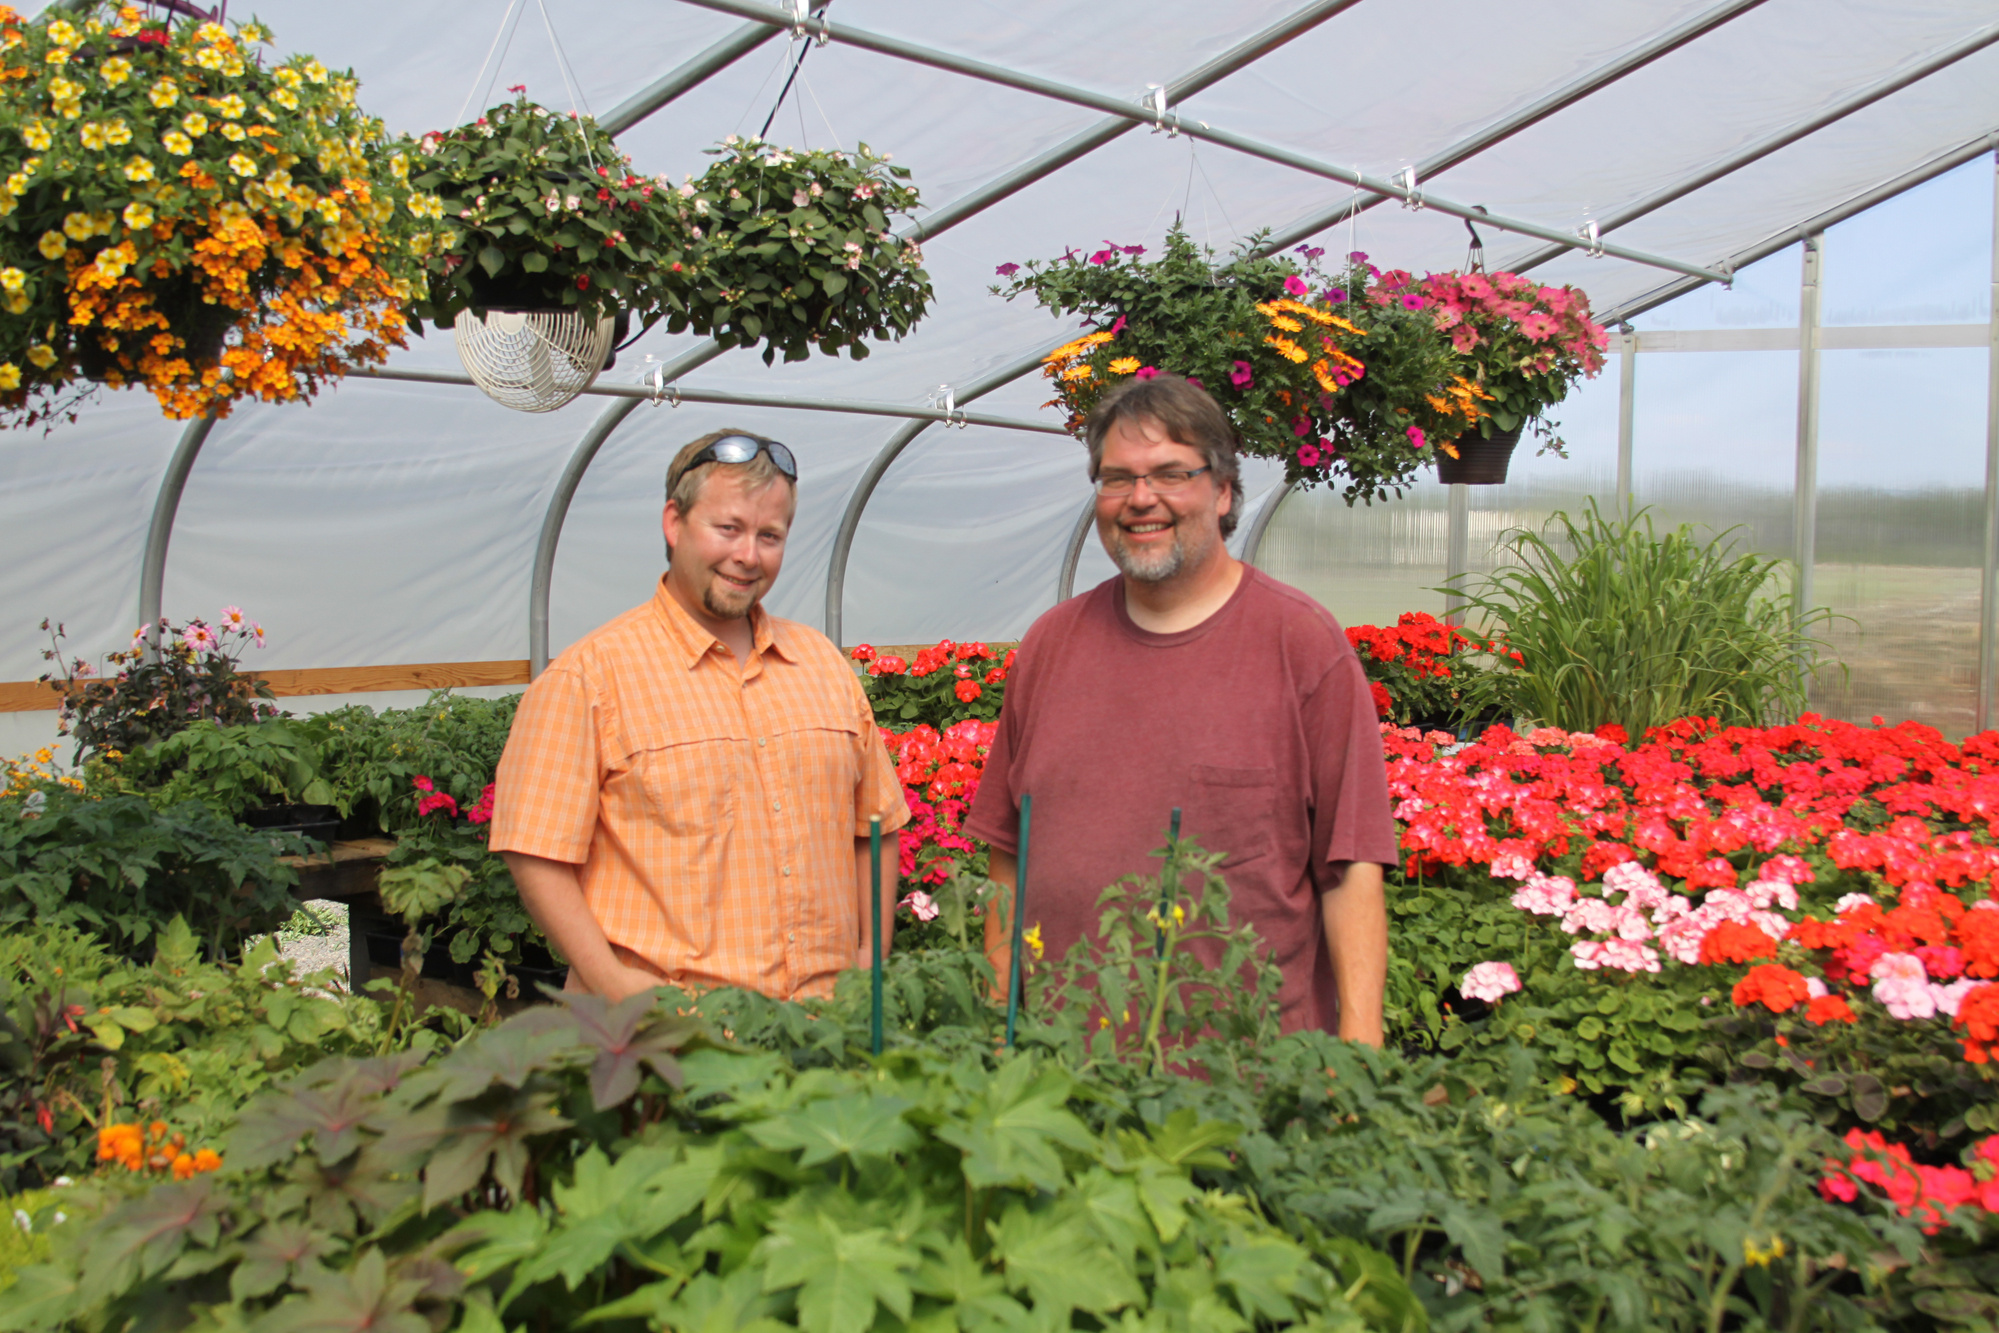 expert advice tools gardening your gardener as home greenhouse centers landscape projects well s istock offers supply jolly company on designs for design and lane garden